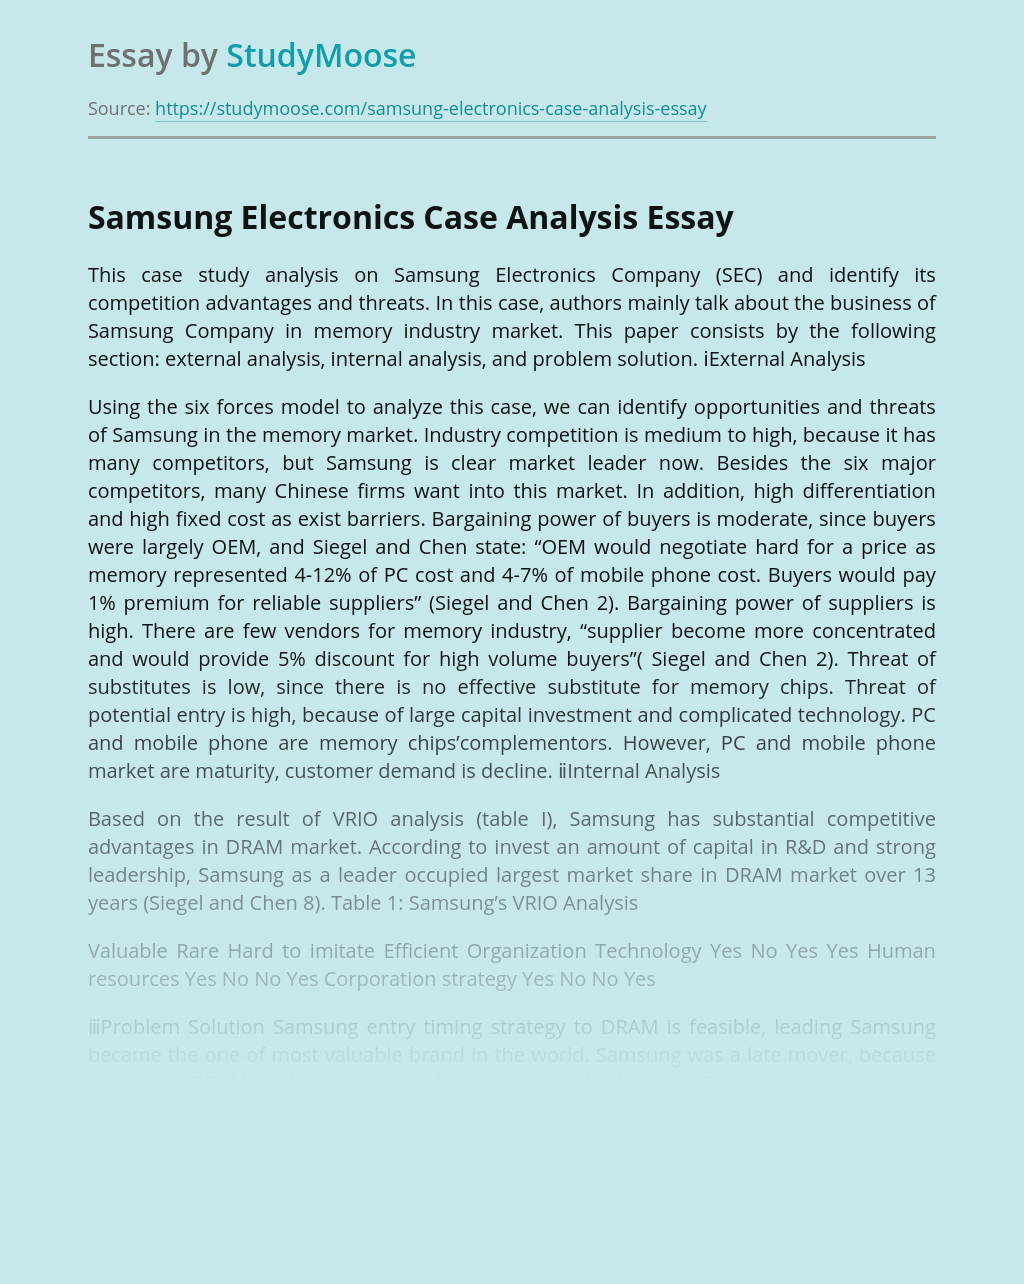 Samsung Electronics Case Analysis